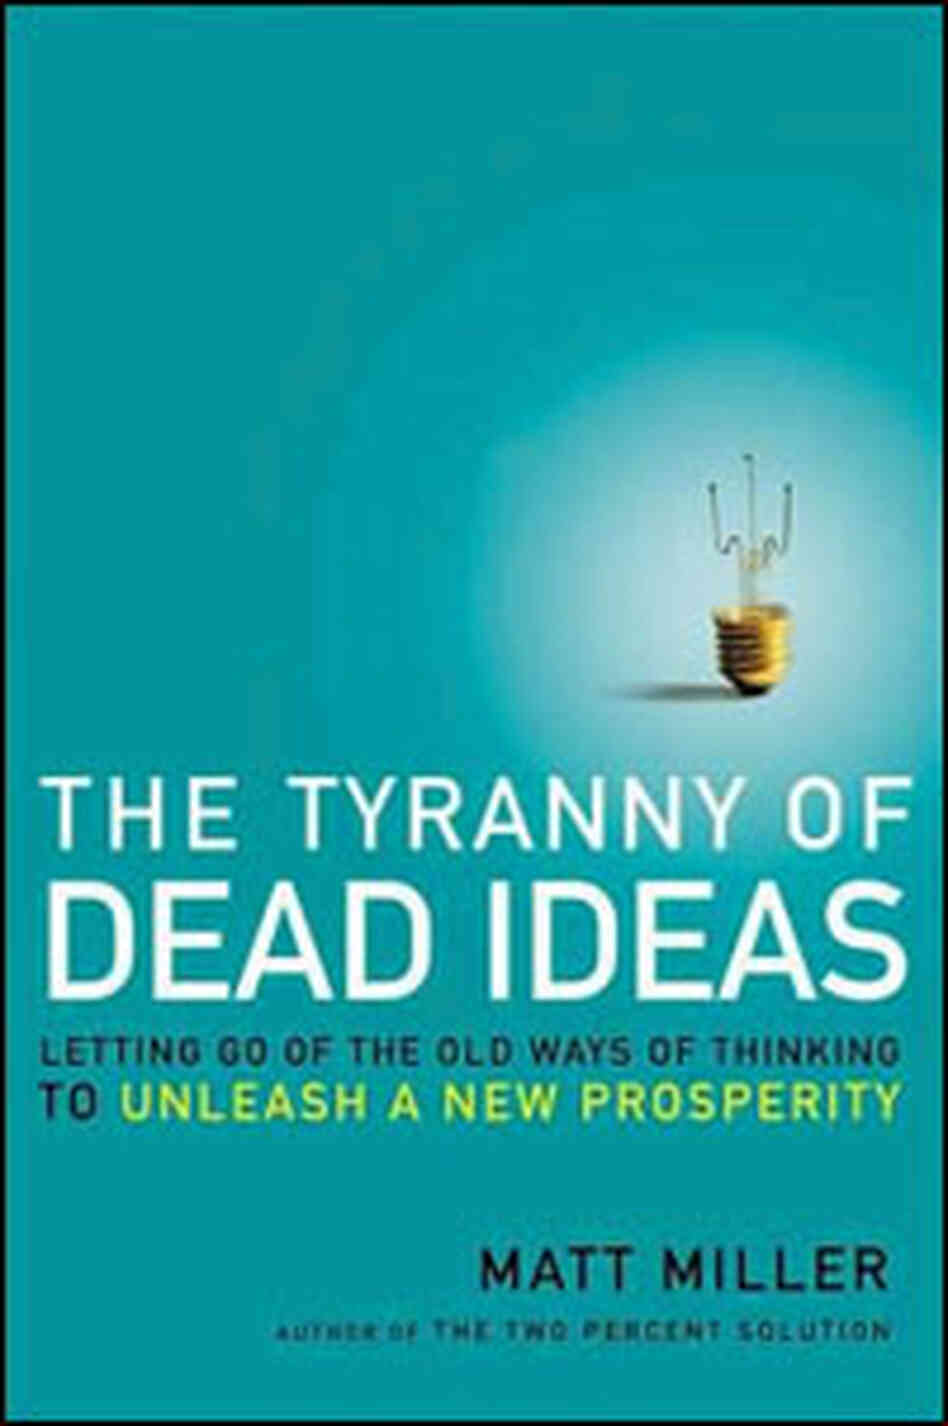 'The Tyranny Of Dead Ideas' cover